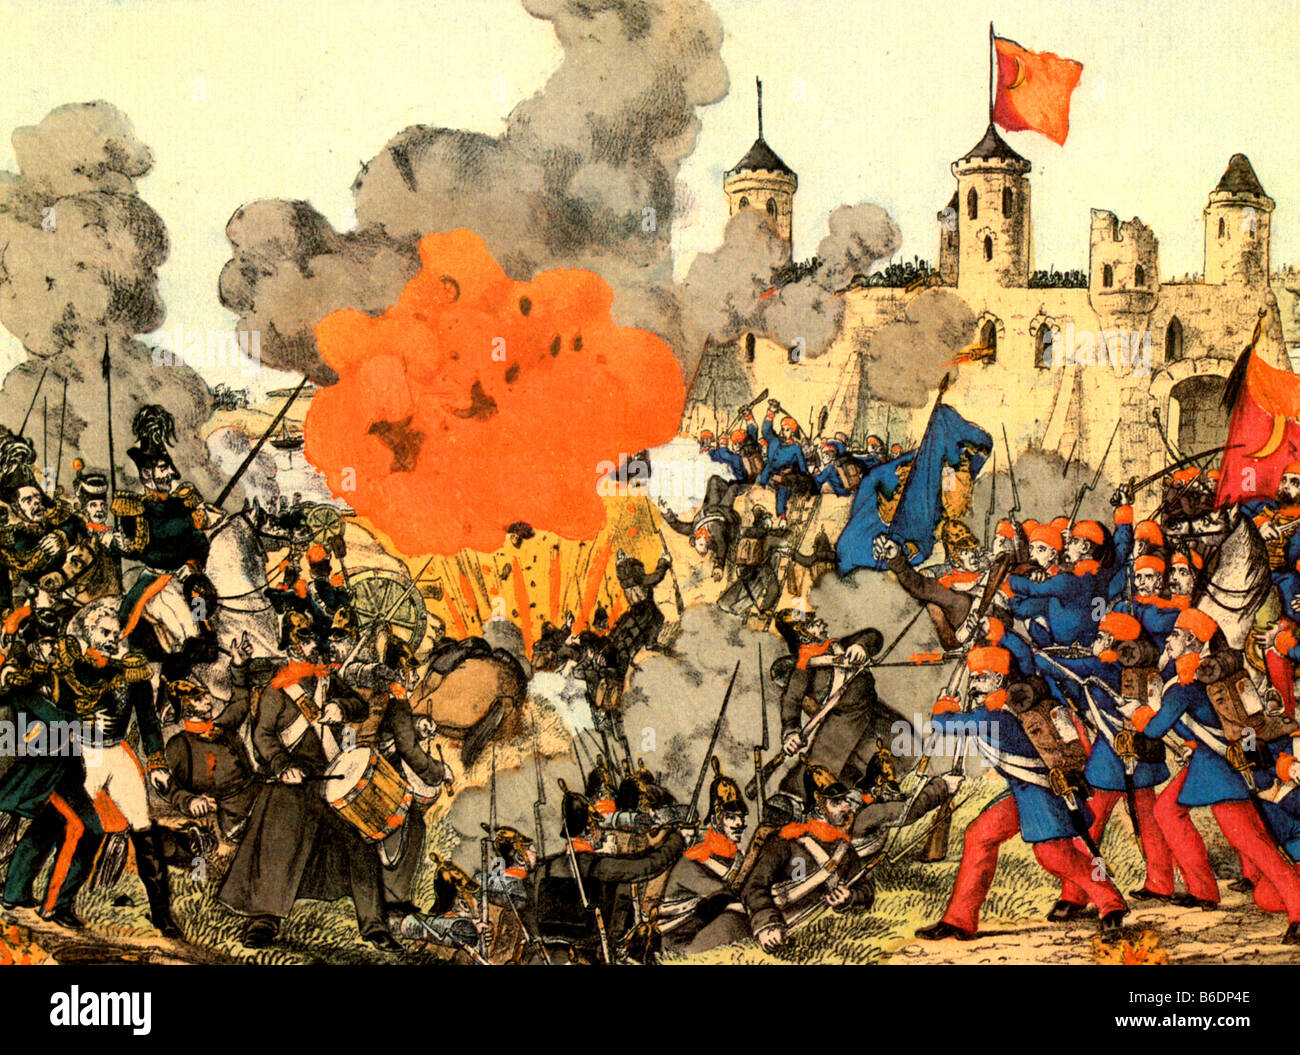 BATTLE OF SILISTRA in 1878 between Russia and Turkey during their 1877-78 war - Stock Image